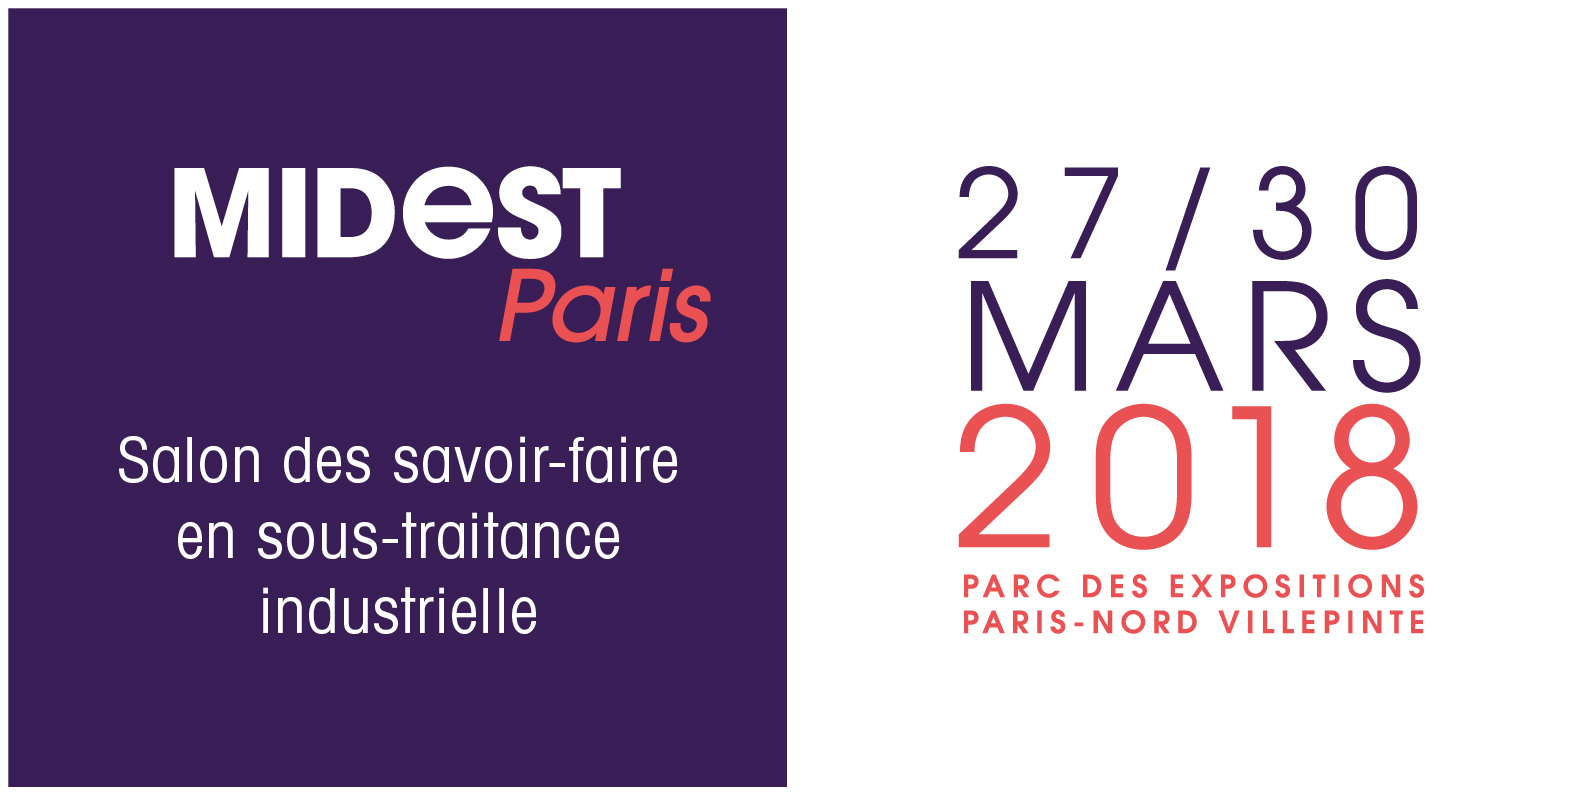 GOIMEK IS EXHIBITING AT MIDEST 2018 EXHIBITION IN PARIS